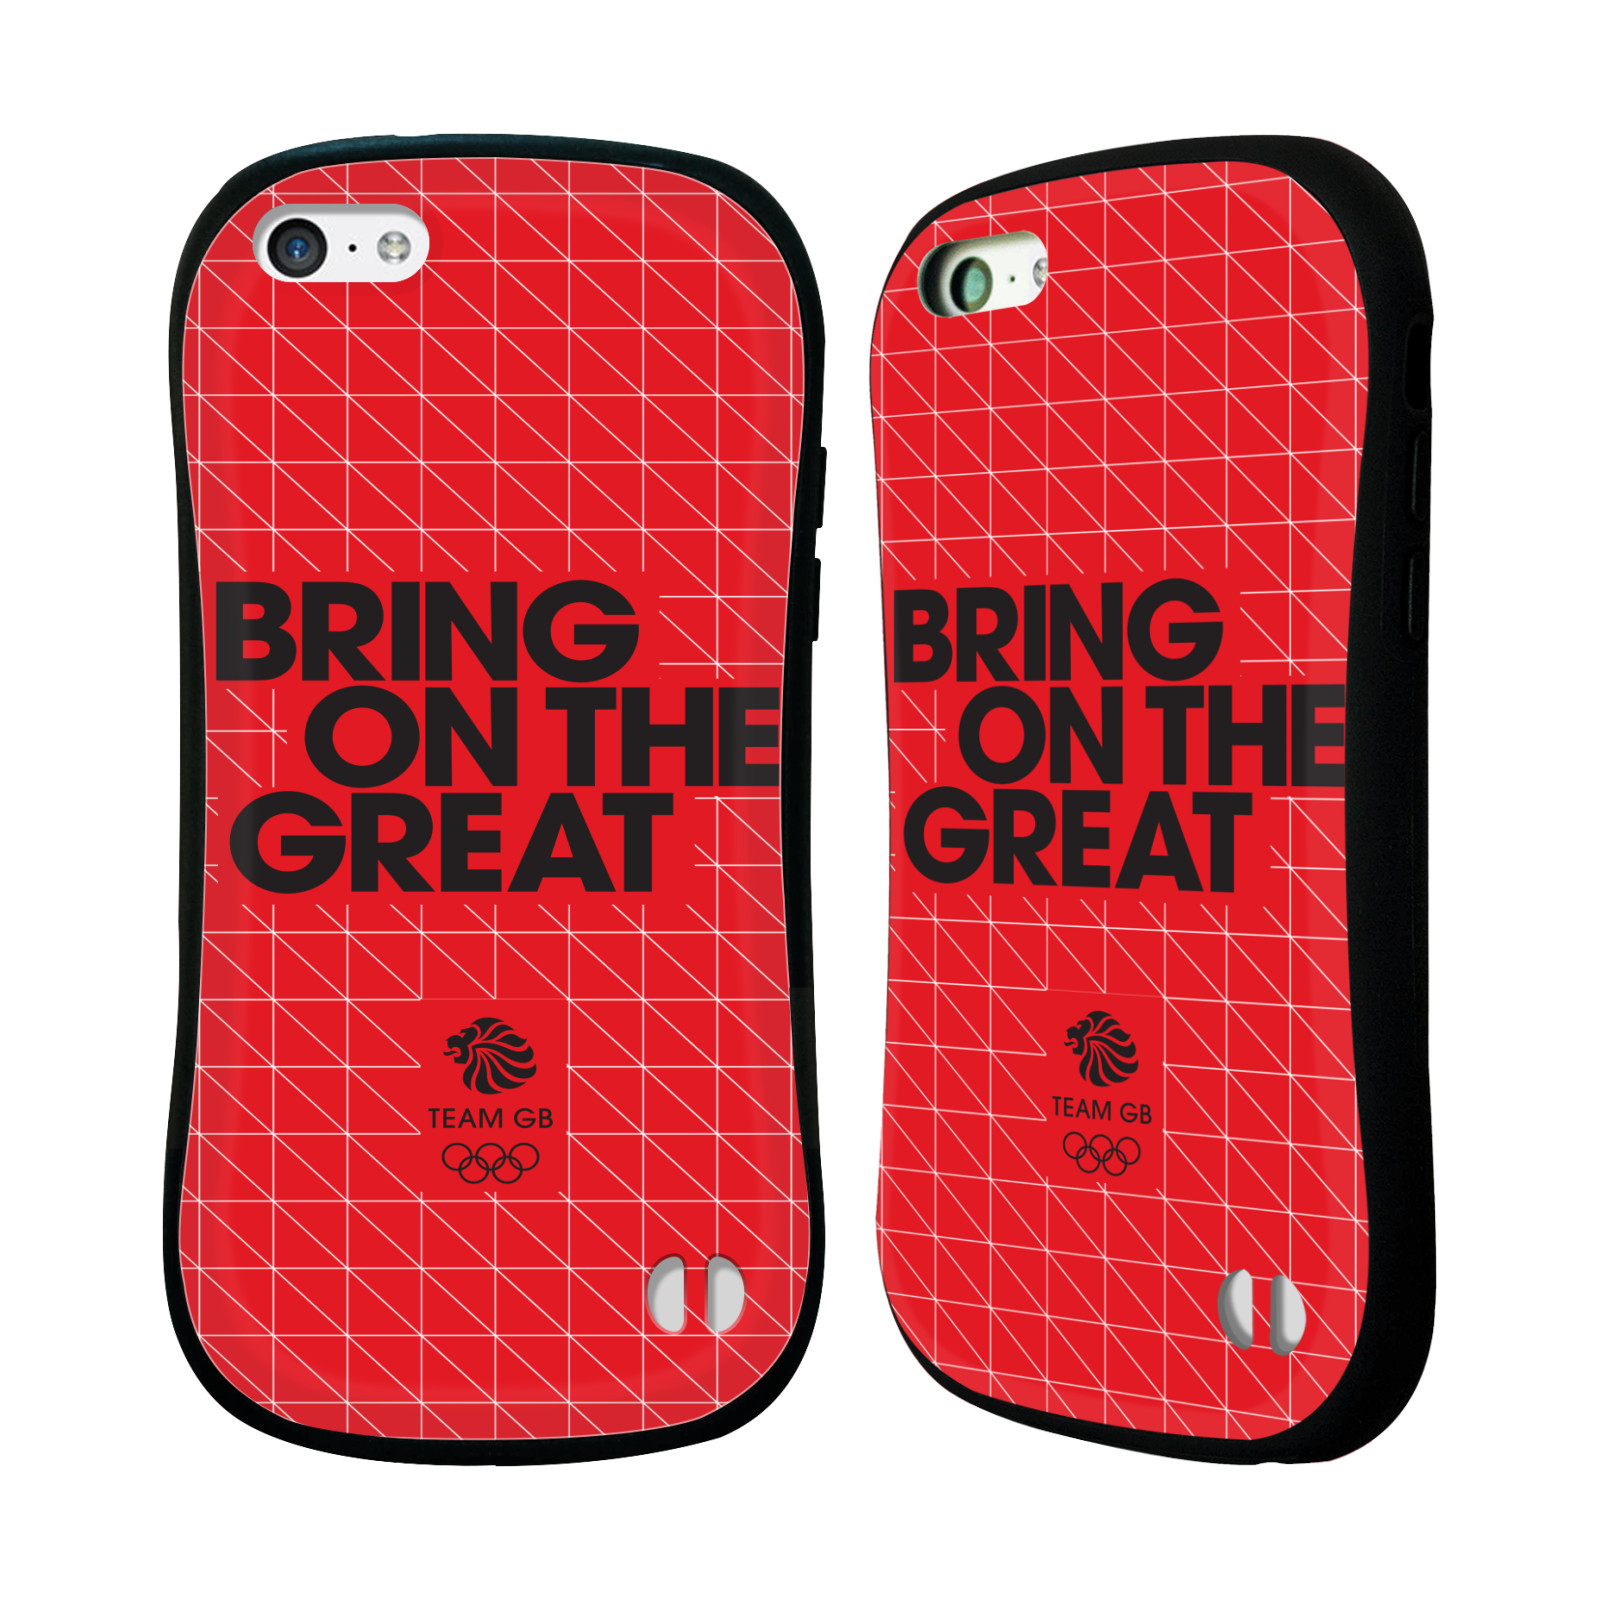 OFFICIAL TEAM GB BRITISH OLYMPIC ASSOCIATION BRING ON THE GREAT HYBRID CASE FOR APPLE IPHONES PHONES